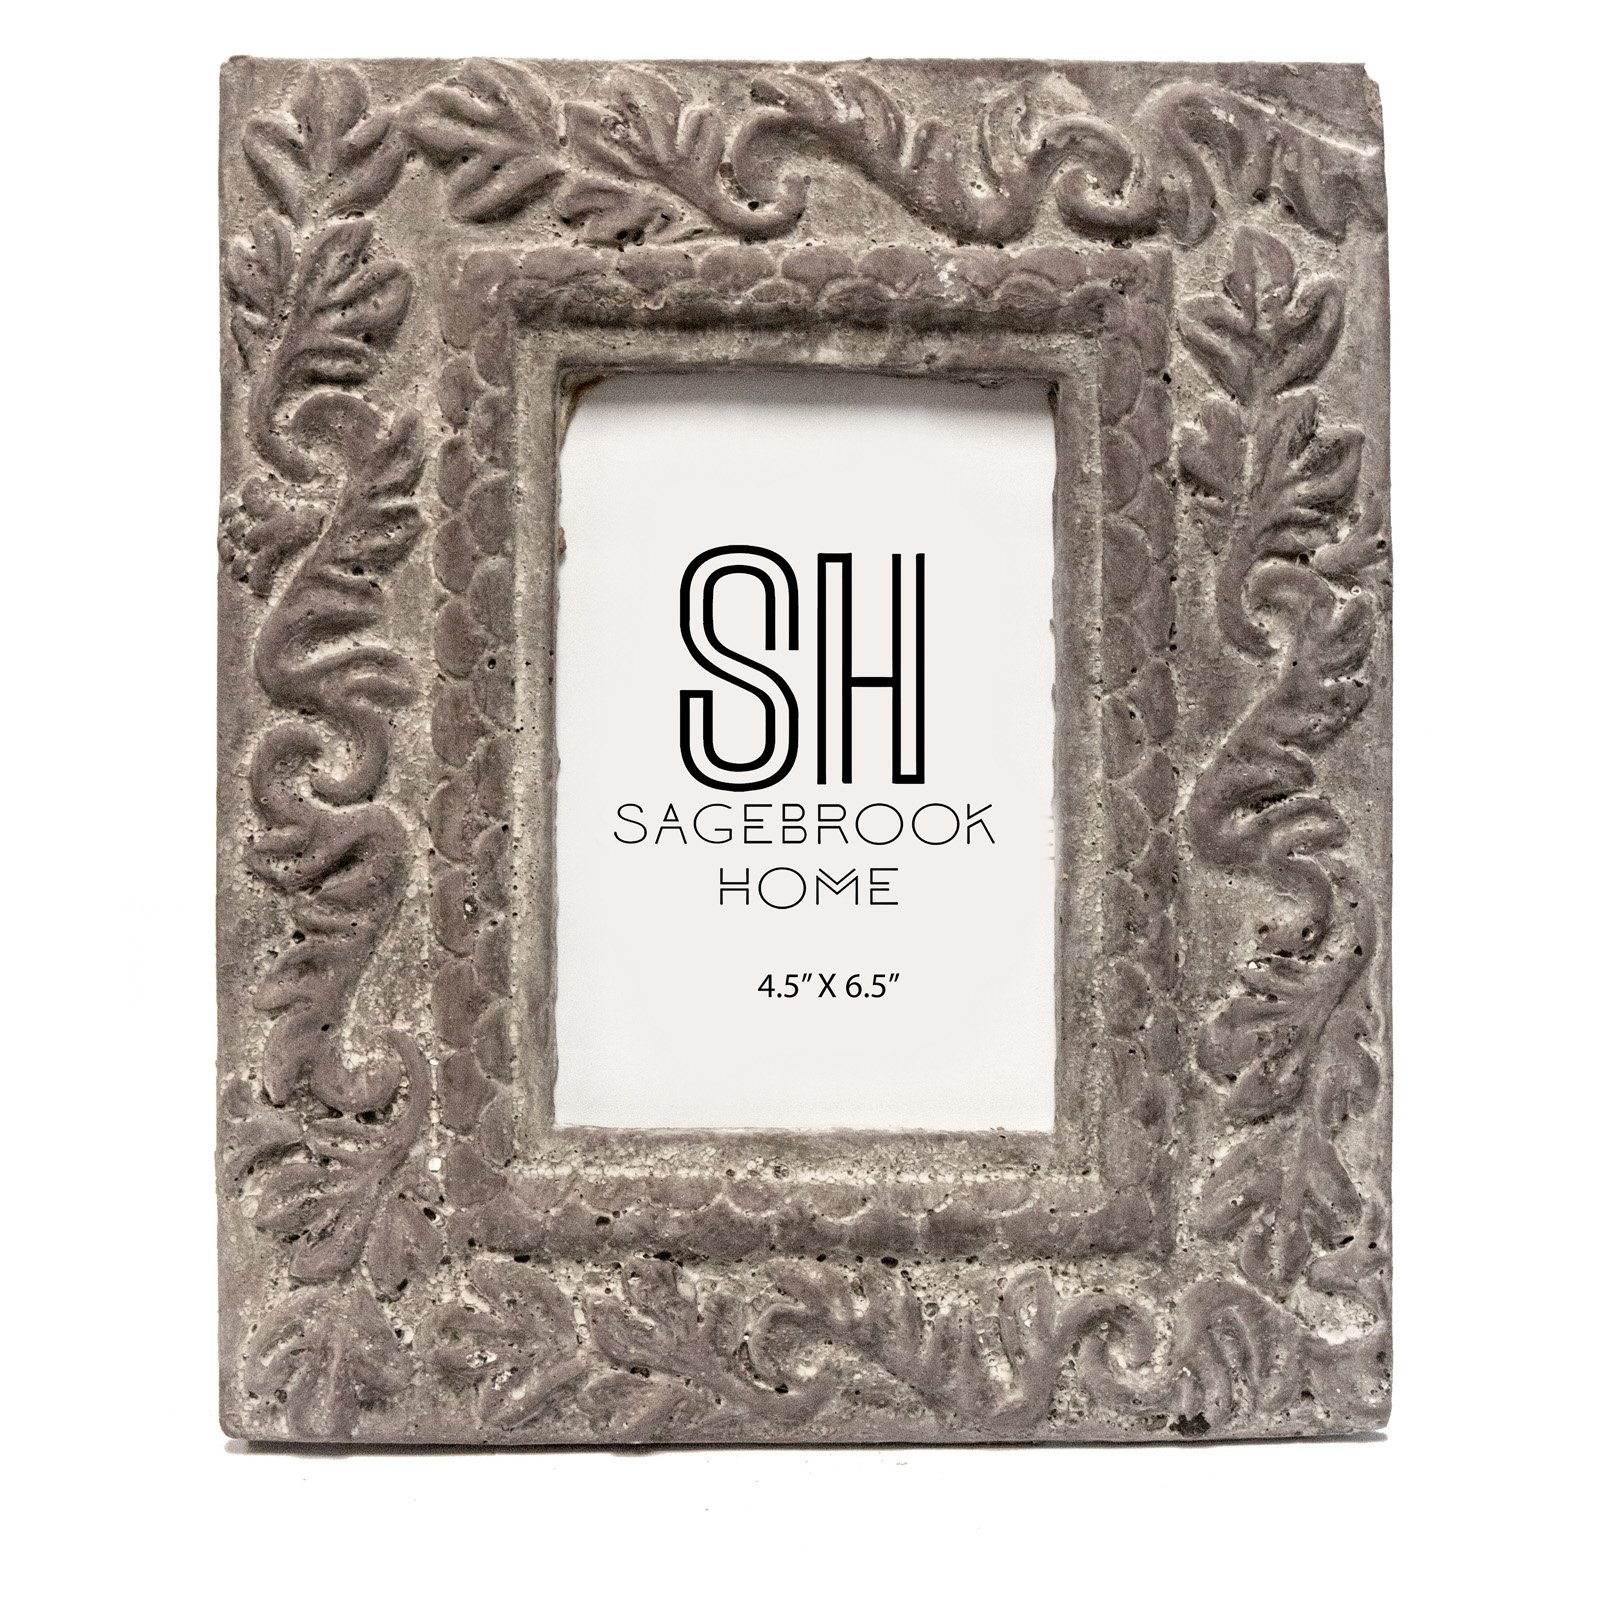 Sagebrook Home Photo Frame - Brown